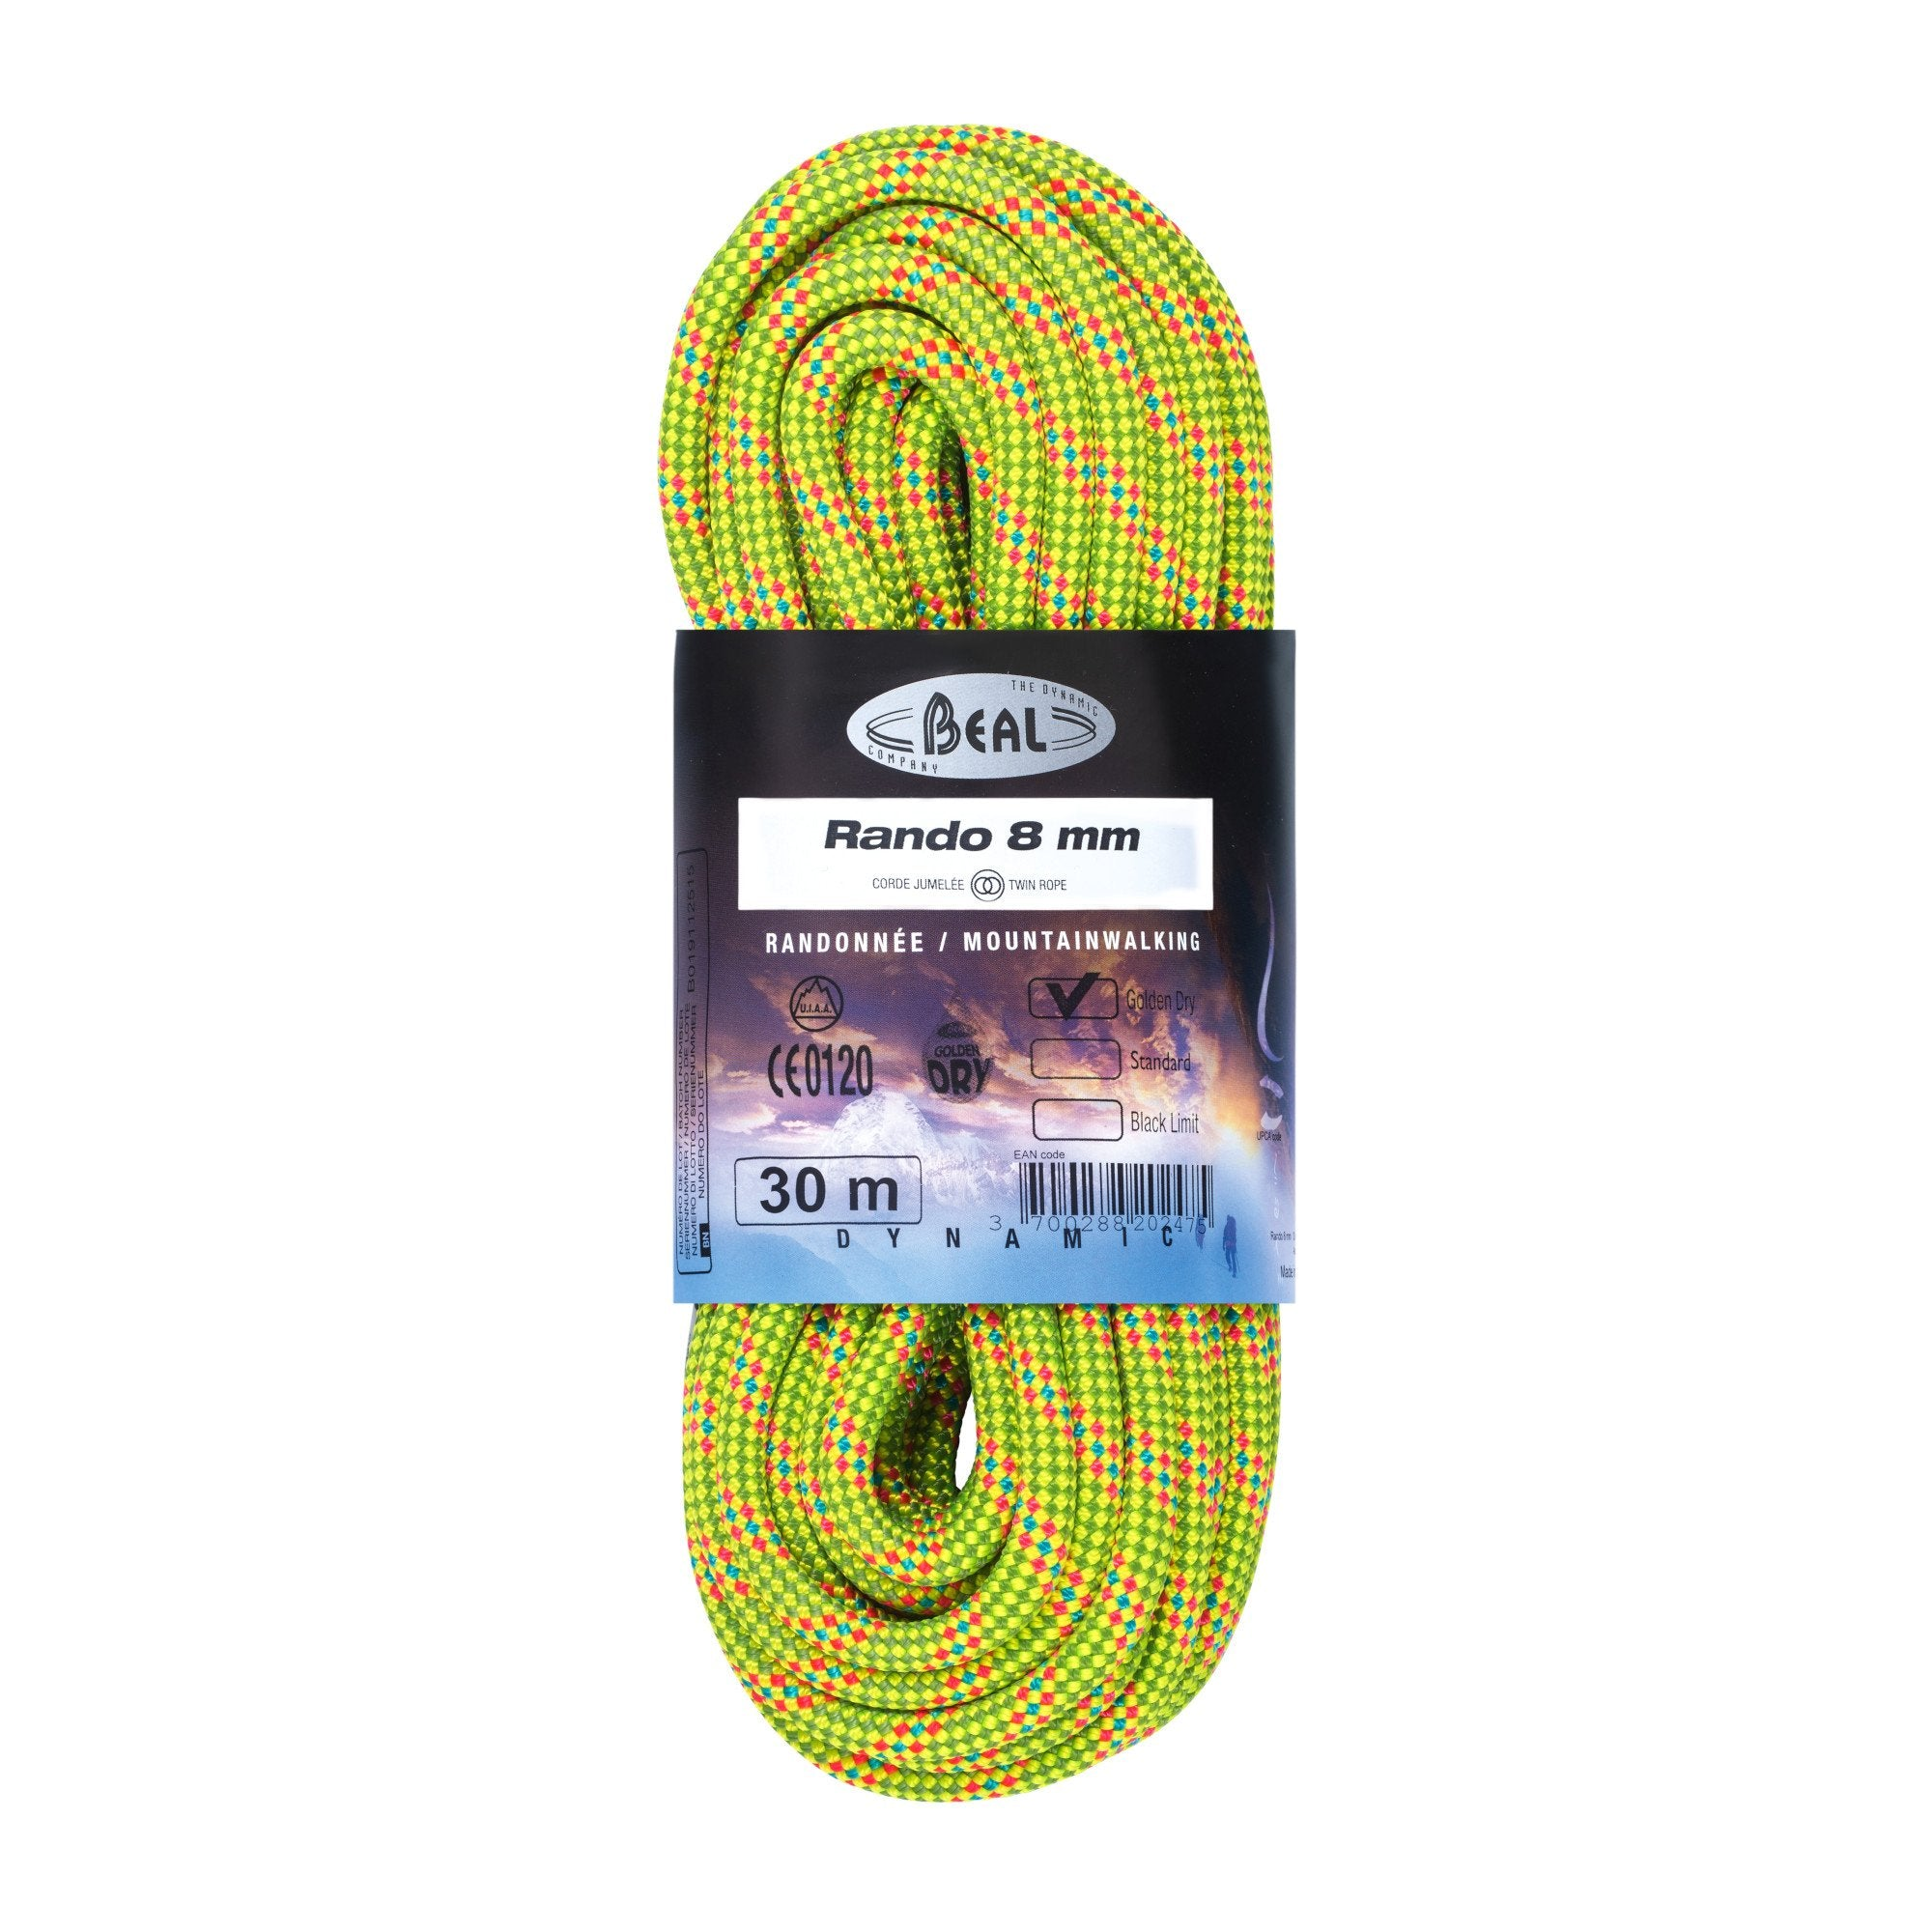 Beal Rando Walking Rope (Golden Dry) 8mm x 20m